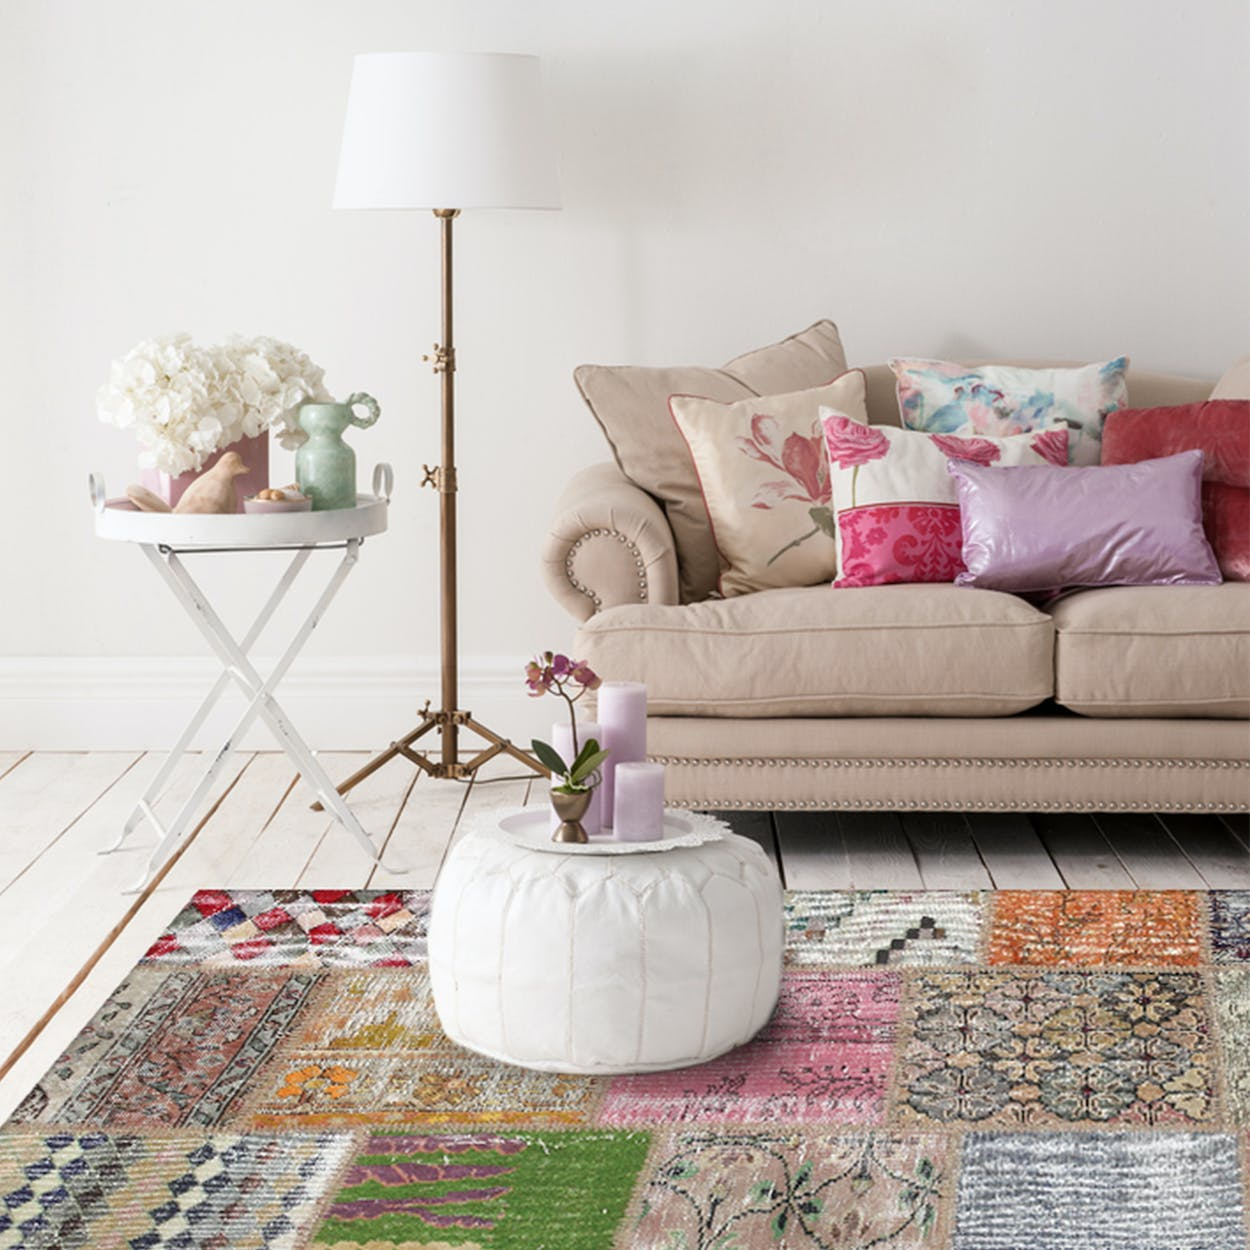 Patchwork Rug in Boho